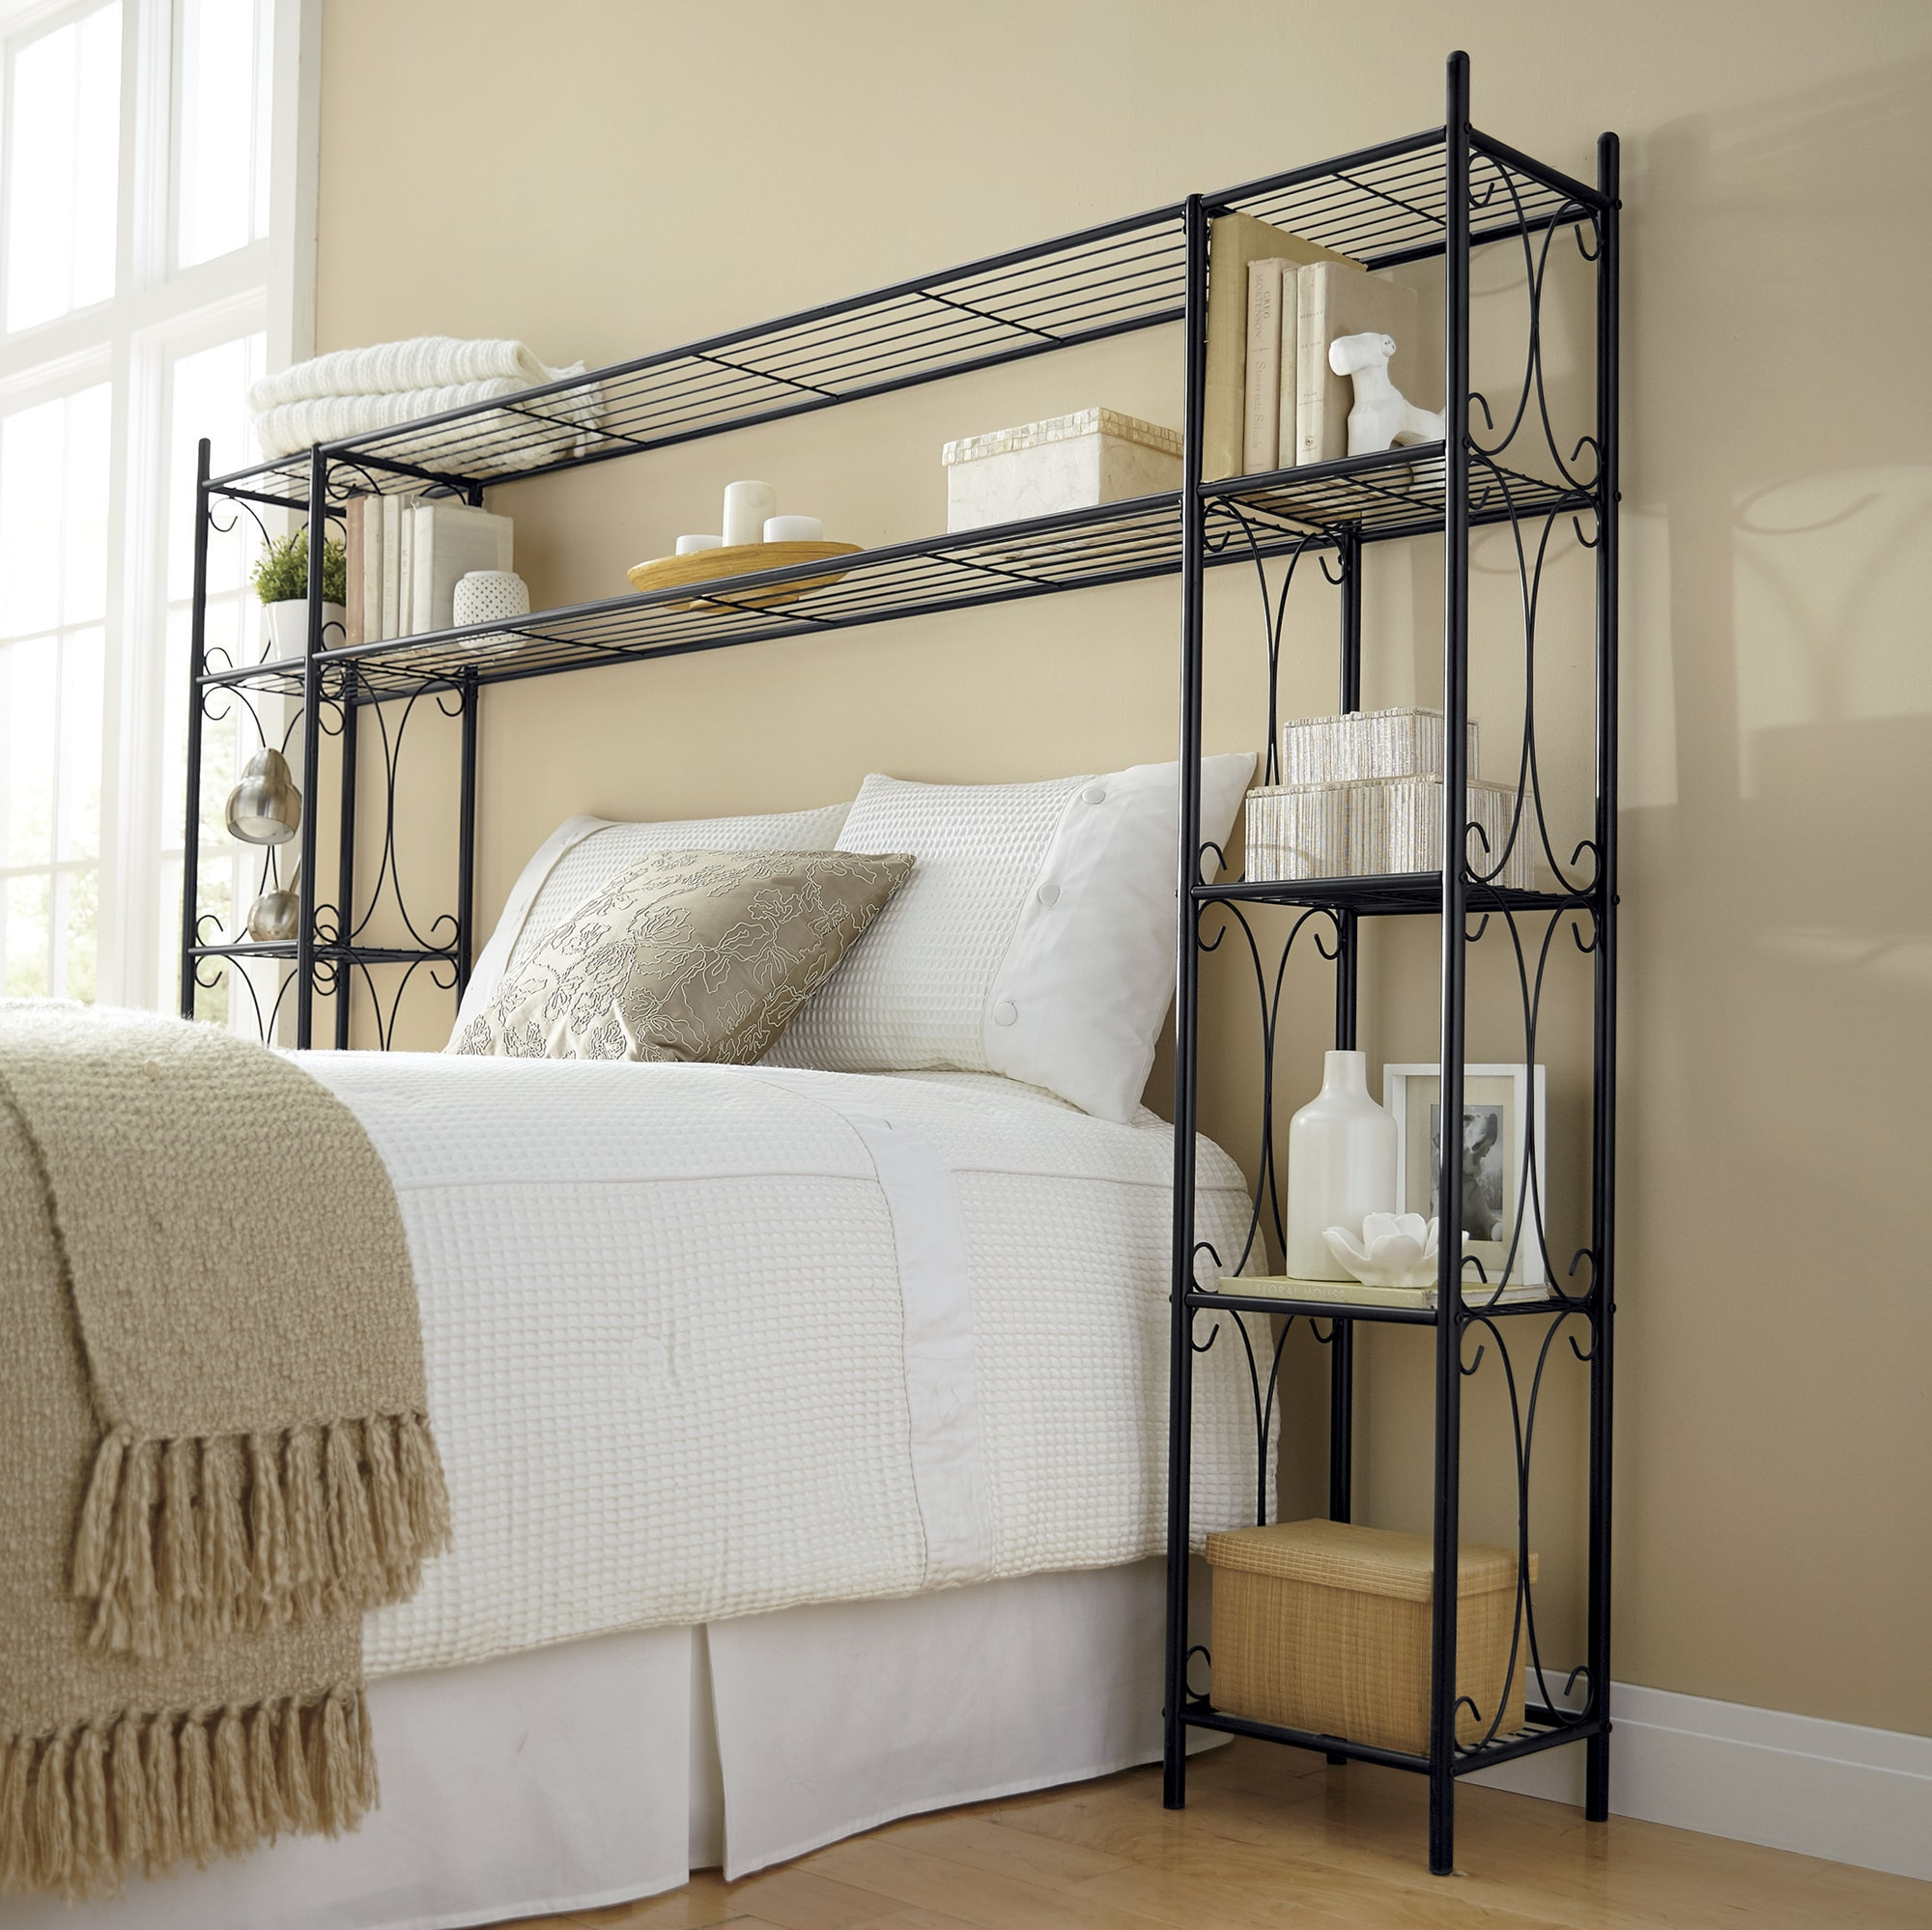 Bed Headboards   Bed Frames with Storage   Ginny s Scroll Headboard Shelving